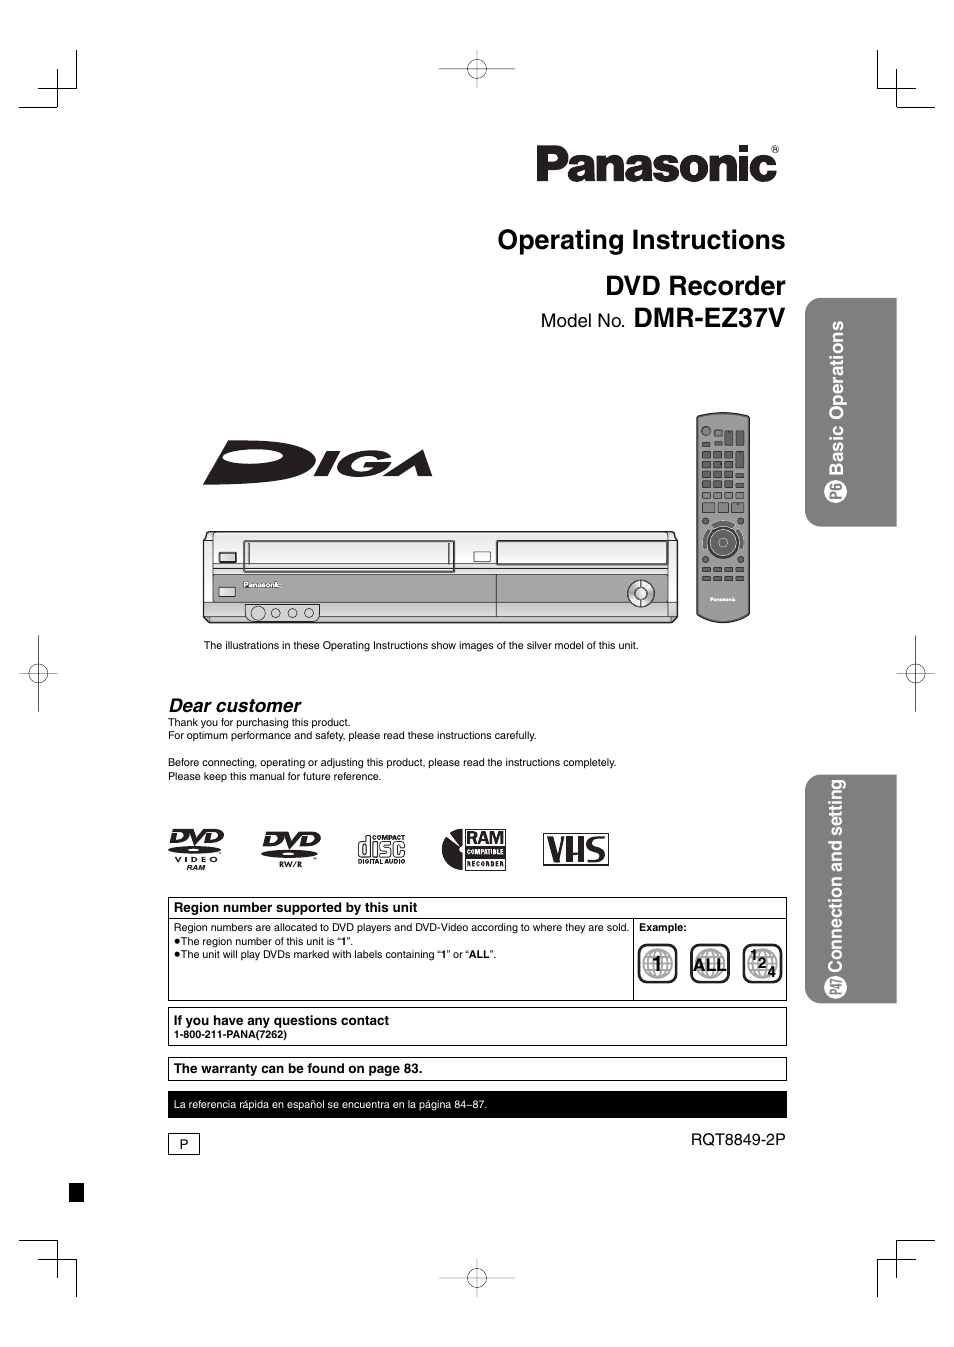 panasonic dmr ez37v user manual 88 pages rh manualsdir com panasonic dmr-ez37v manual panasonic dmr ez47v manual pdf